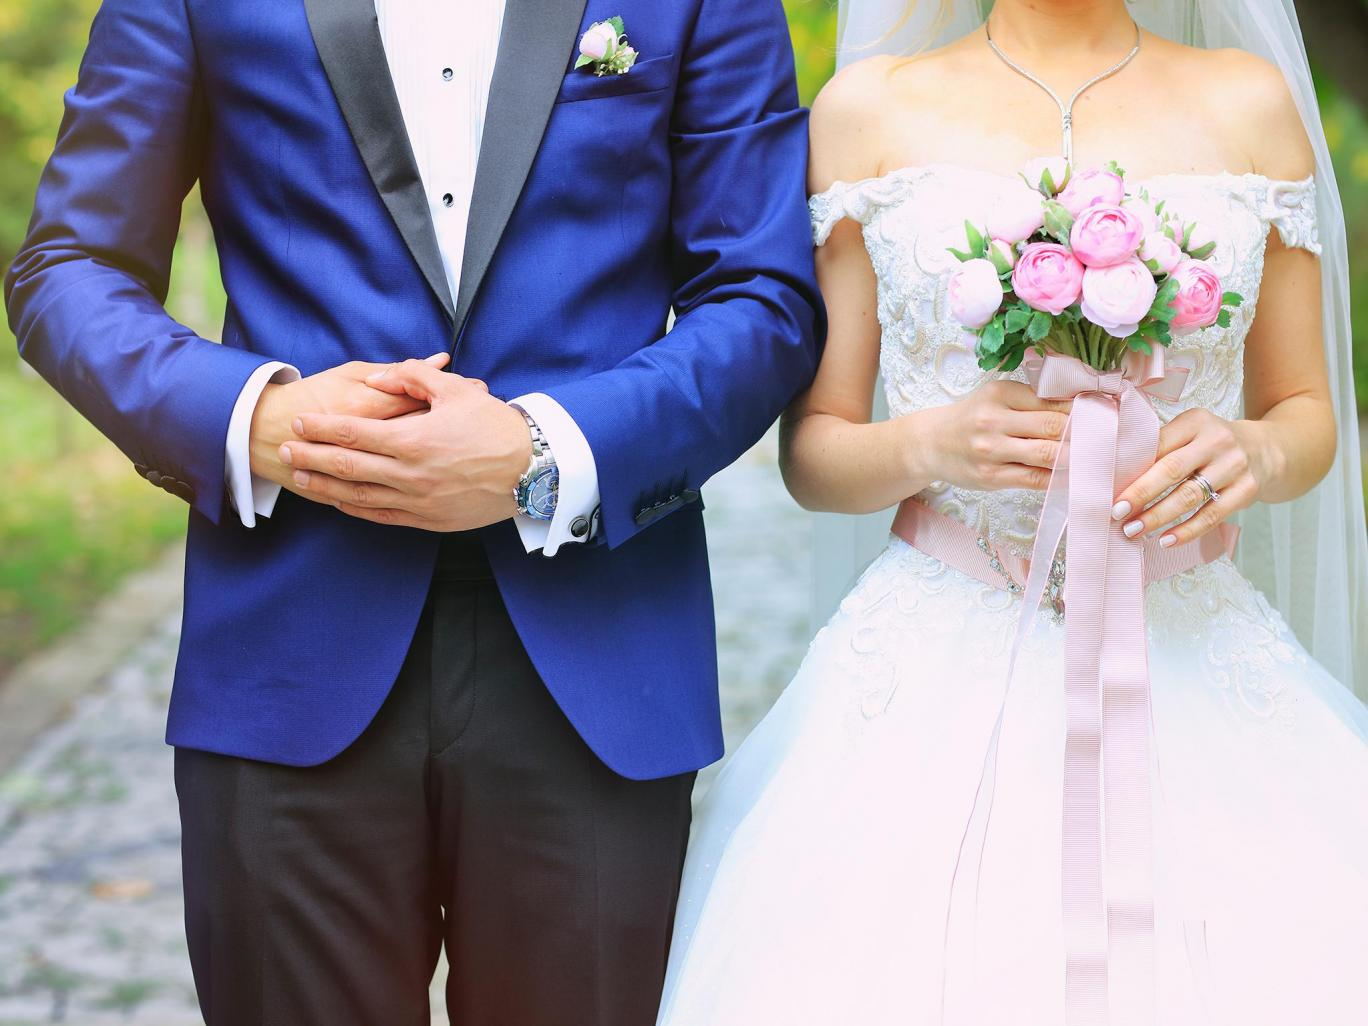 Is it sexist for men to expect their wife to adopt their name?